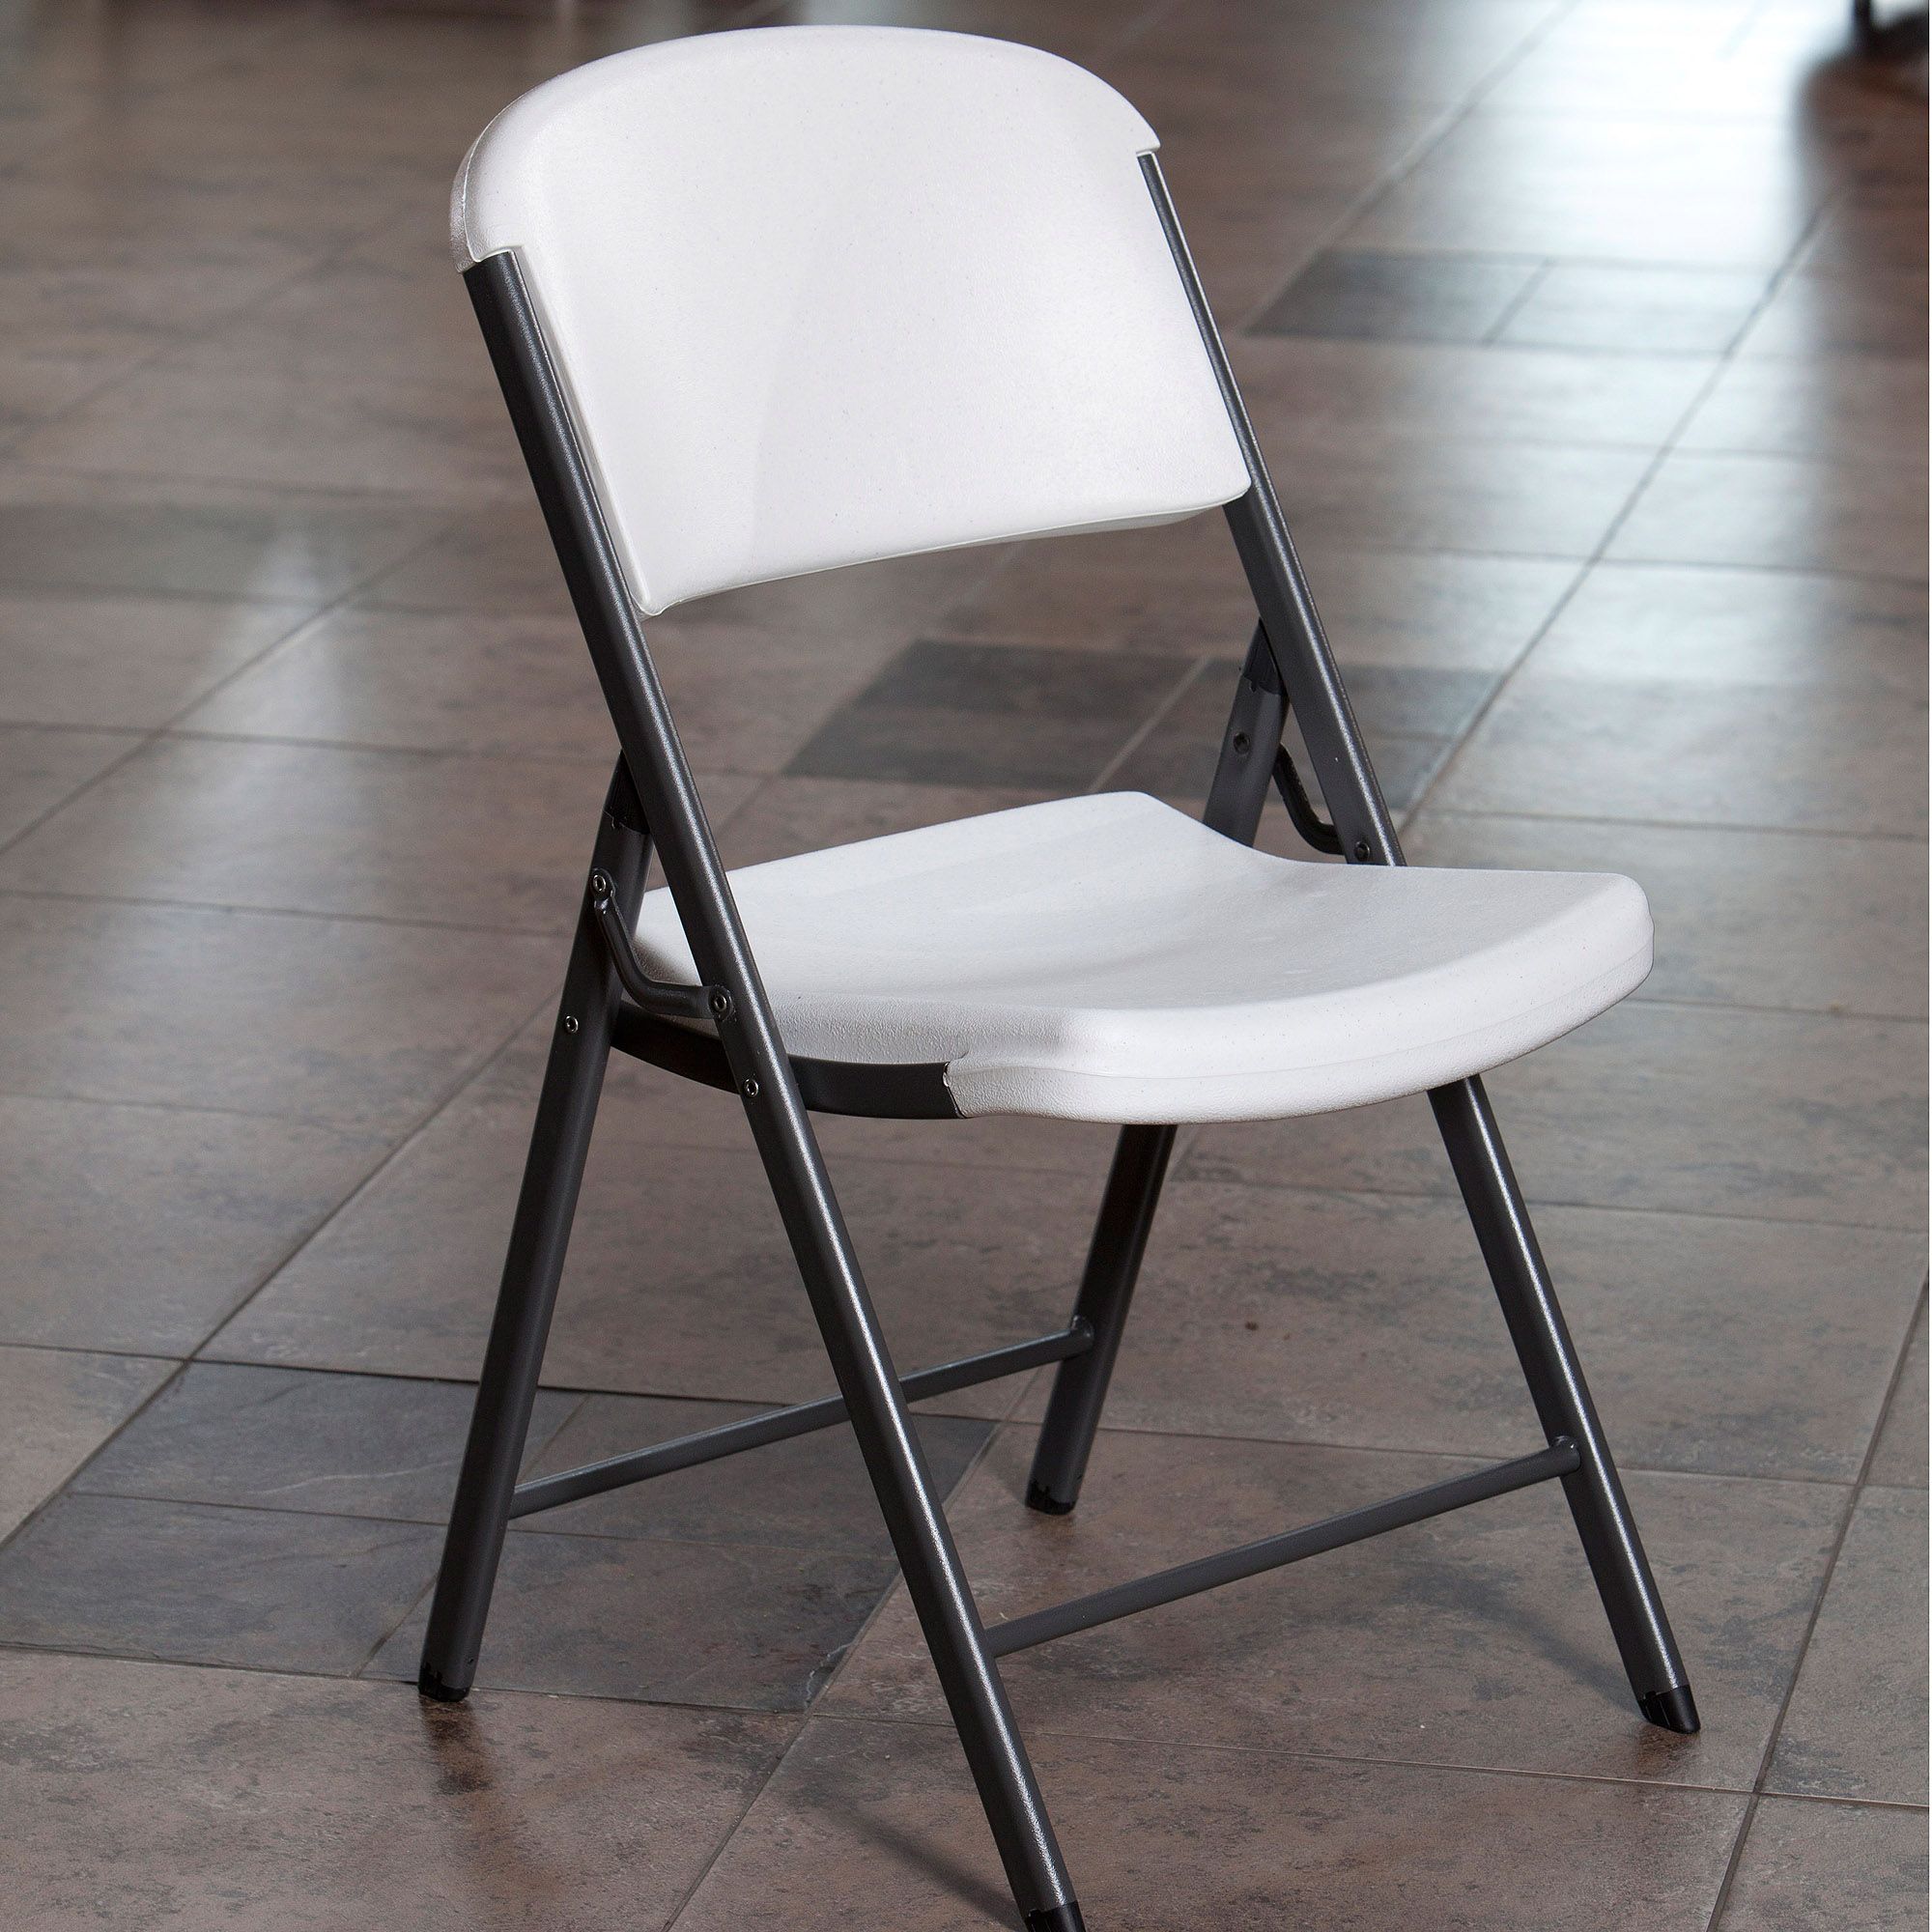 Lifetime Classic Commercial Folding Chair, Set of 4 by